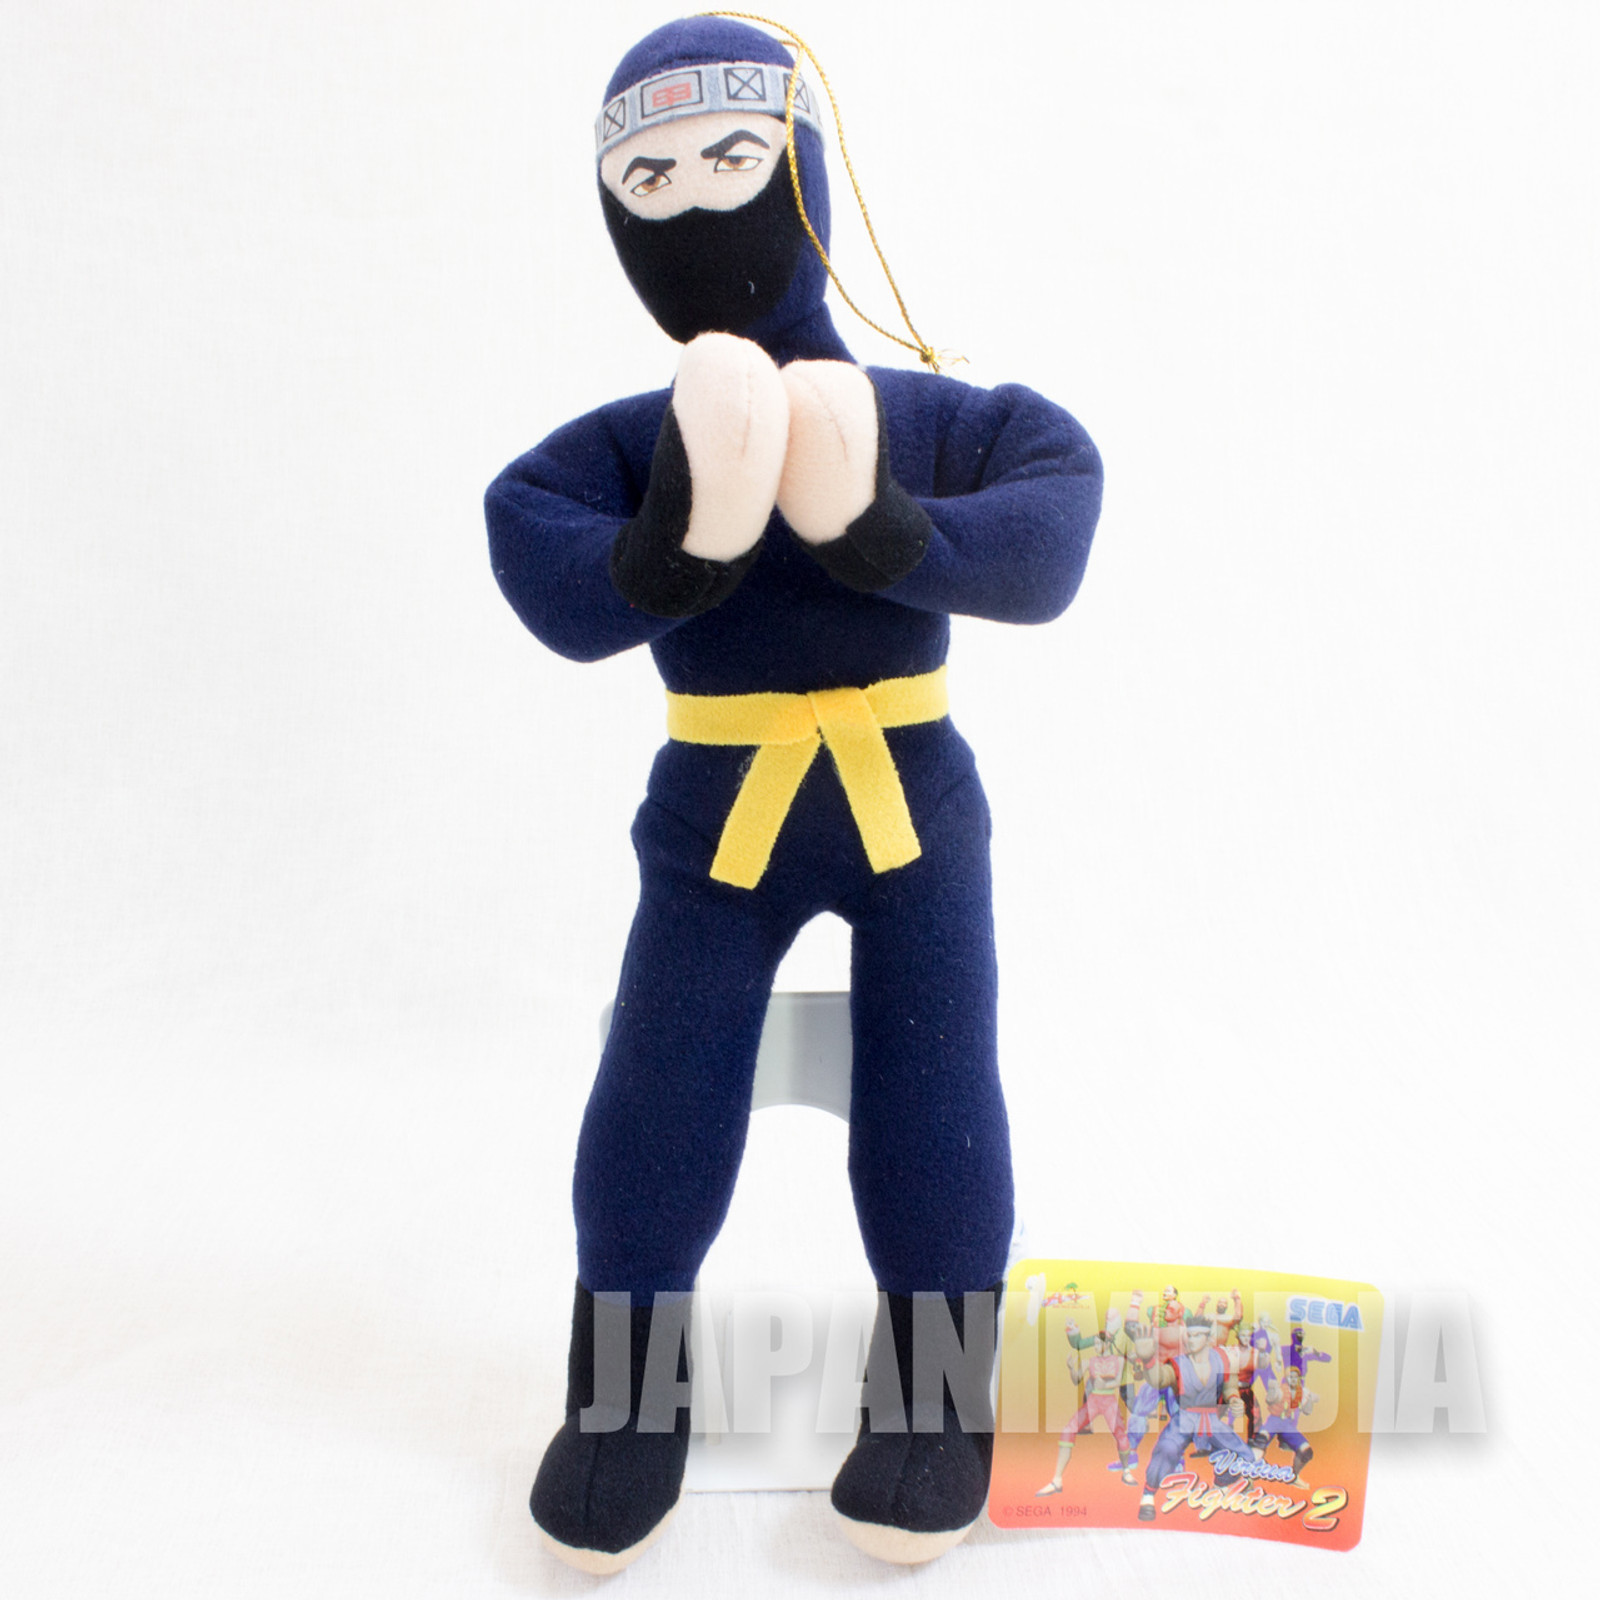 "Virtua Fighter 2 Kagemaru 10"" Plush Doll SEGA 1994 JAPAN GAME FIGURE"